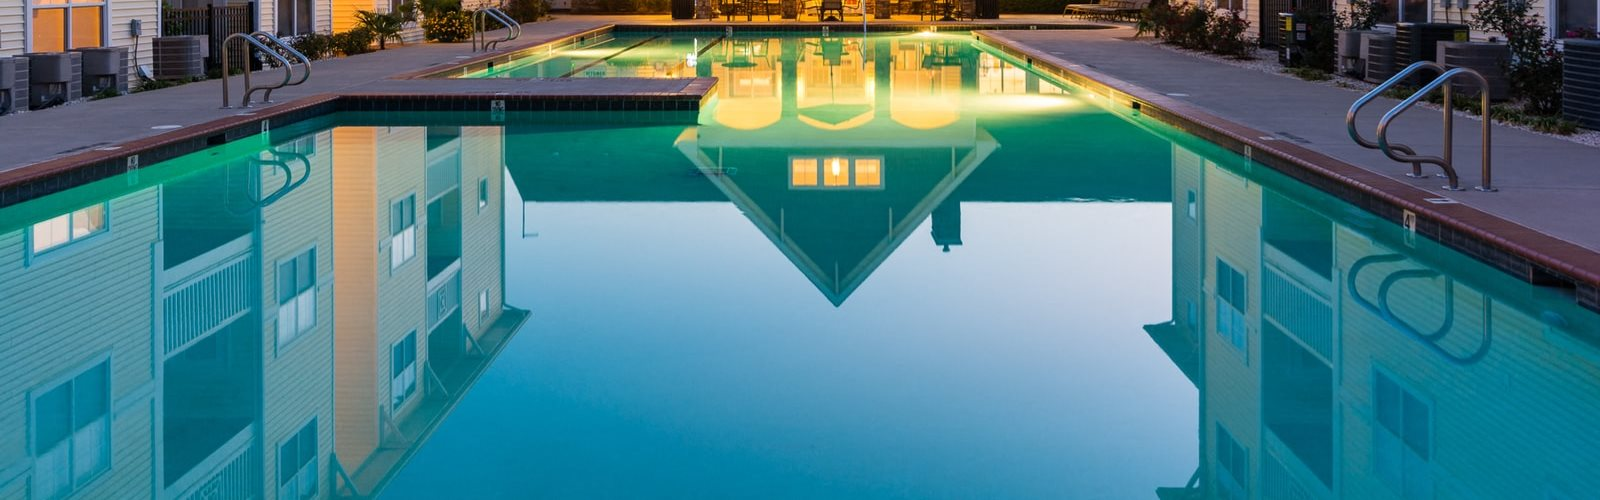 Swimming pool with sundeck surrounded by buildings and leasing office exterior